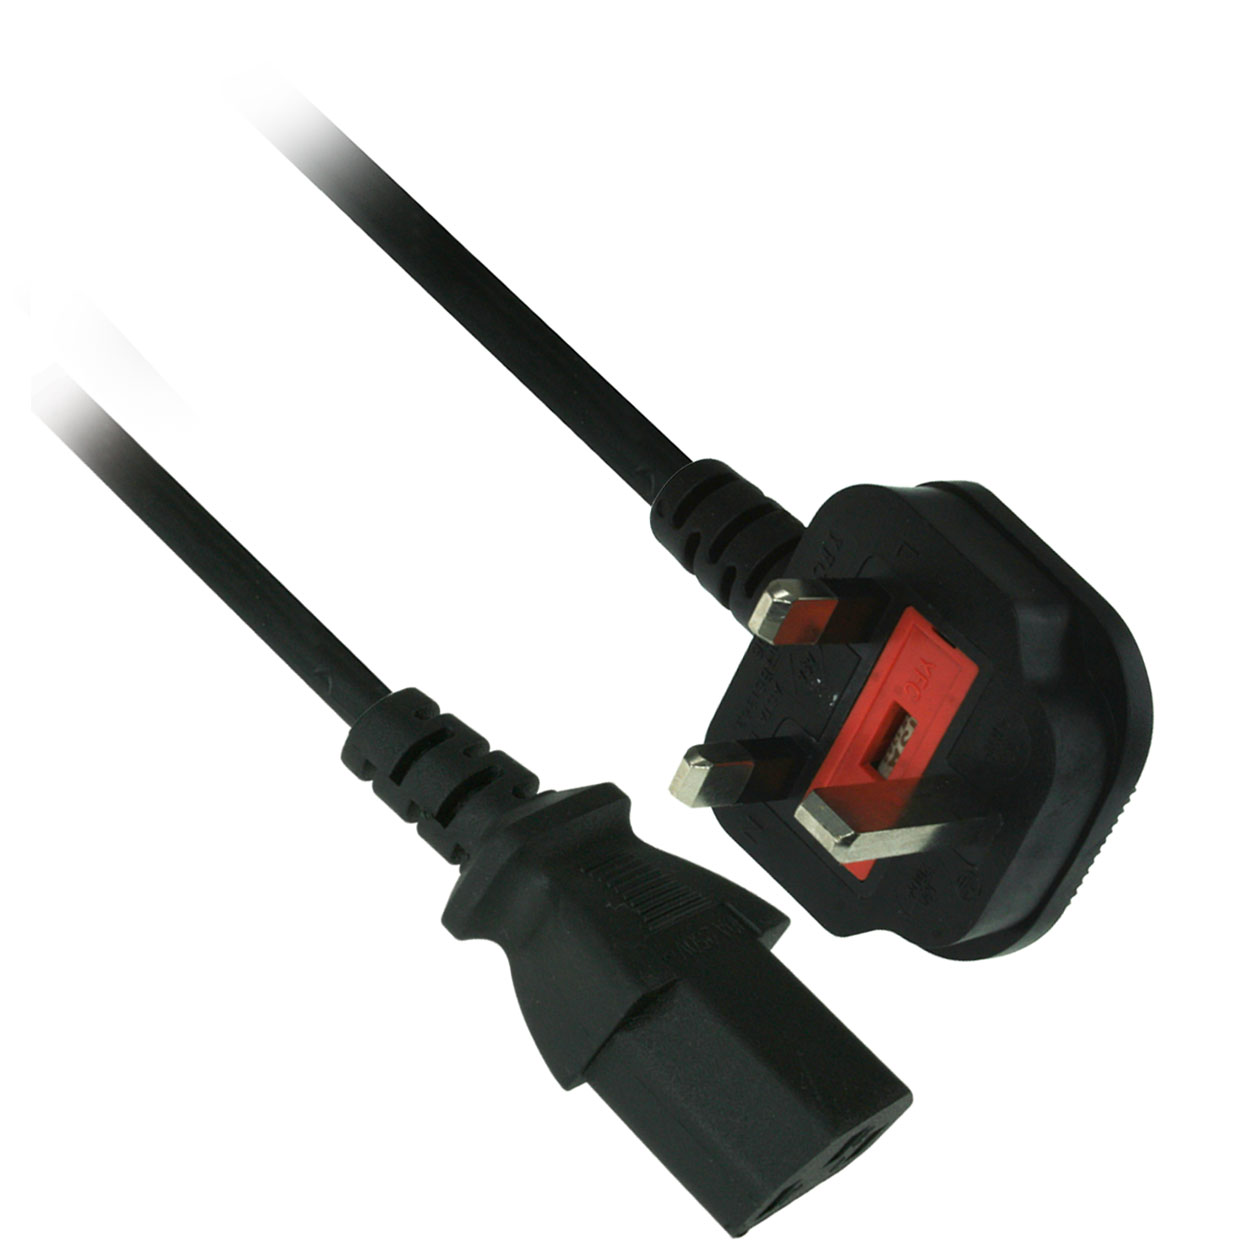 6ft 18AWG AC Power Cord Fused, UK Britain England (BS1363 to IEC 60320 C13) - Black